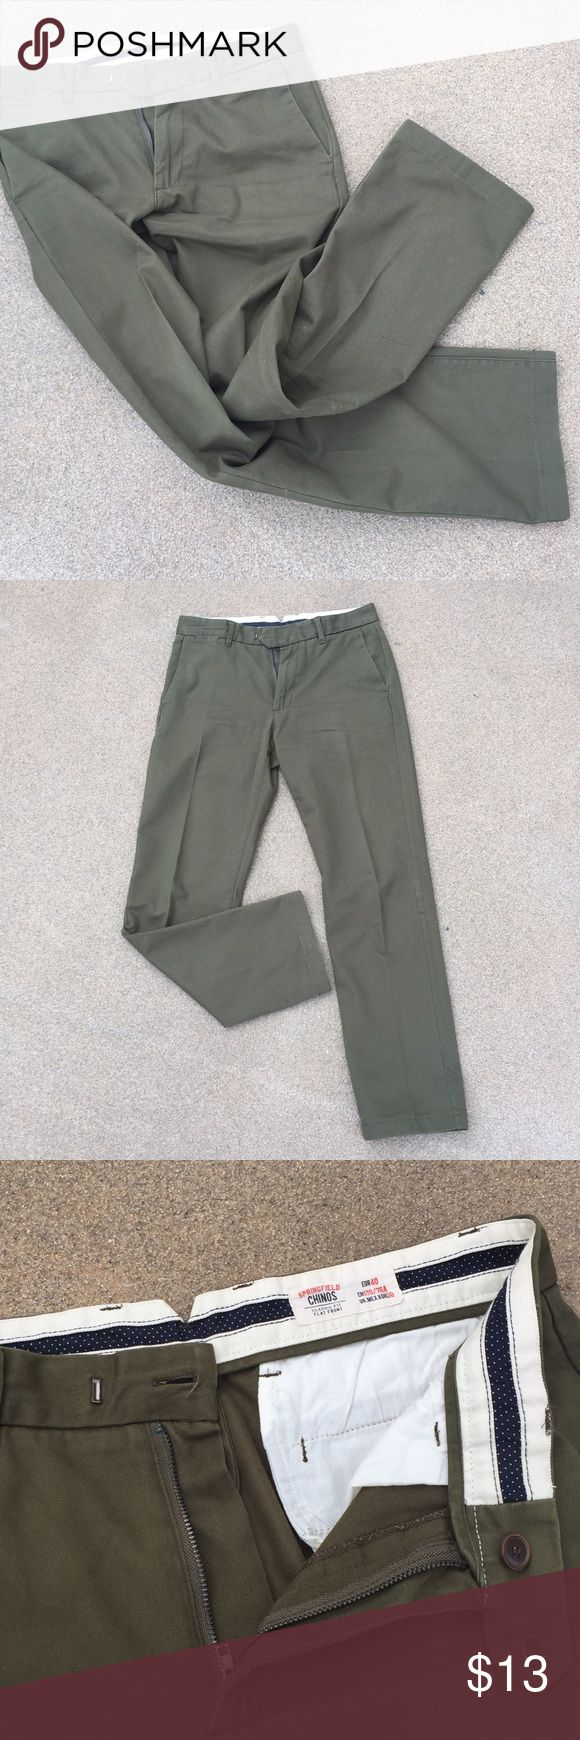 European Springfield's Men's Chino Pant - 30/30 Basic twill chino men's pants, size EU 40, US 30/30-31. Great pant to be dressed up with a sport coat or dressed down for a casual weekend. No stains. No smells. Great condition! They have been worn a few times, but they just don't fit anymore! Features 5 pockets, 2 side, 2 back, 1 small pocket near belt line. regular fit. Springfield Pants Chinos & Khakis